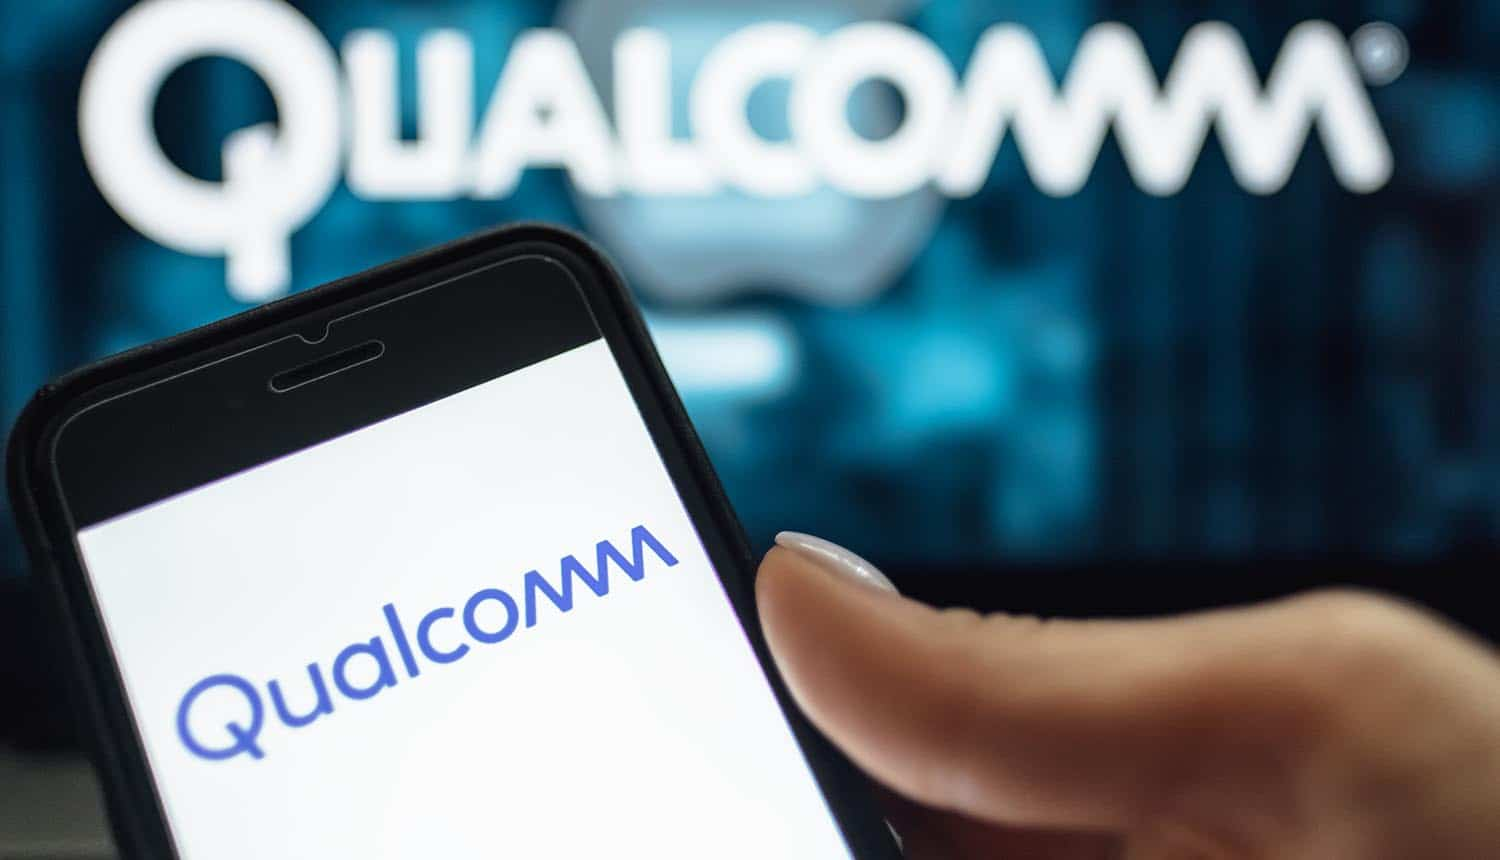 Screen shot of Qualcomm logo on the smarphone showing security vulnerability on Qualcomm chips affecting Android phones